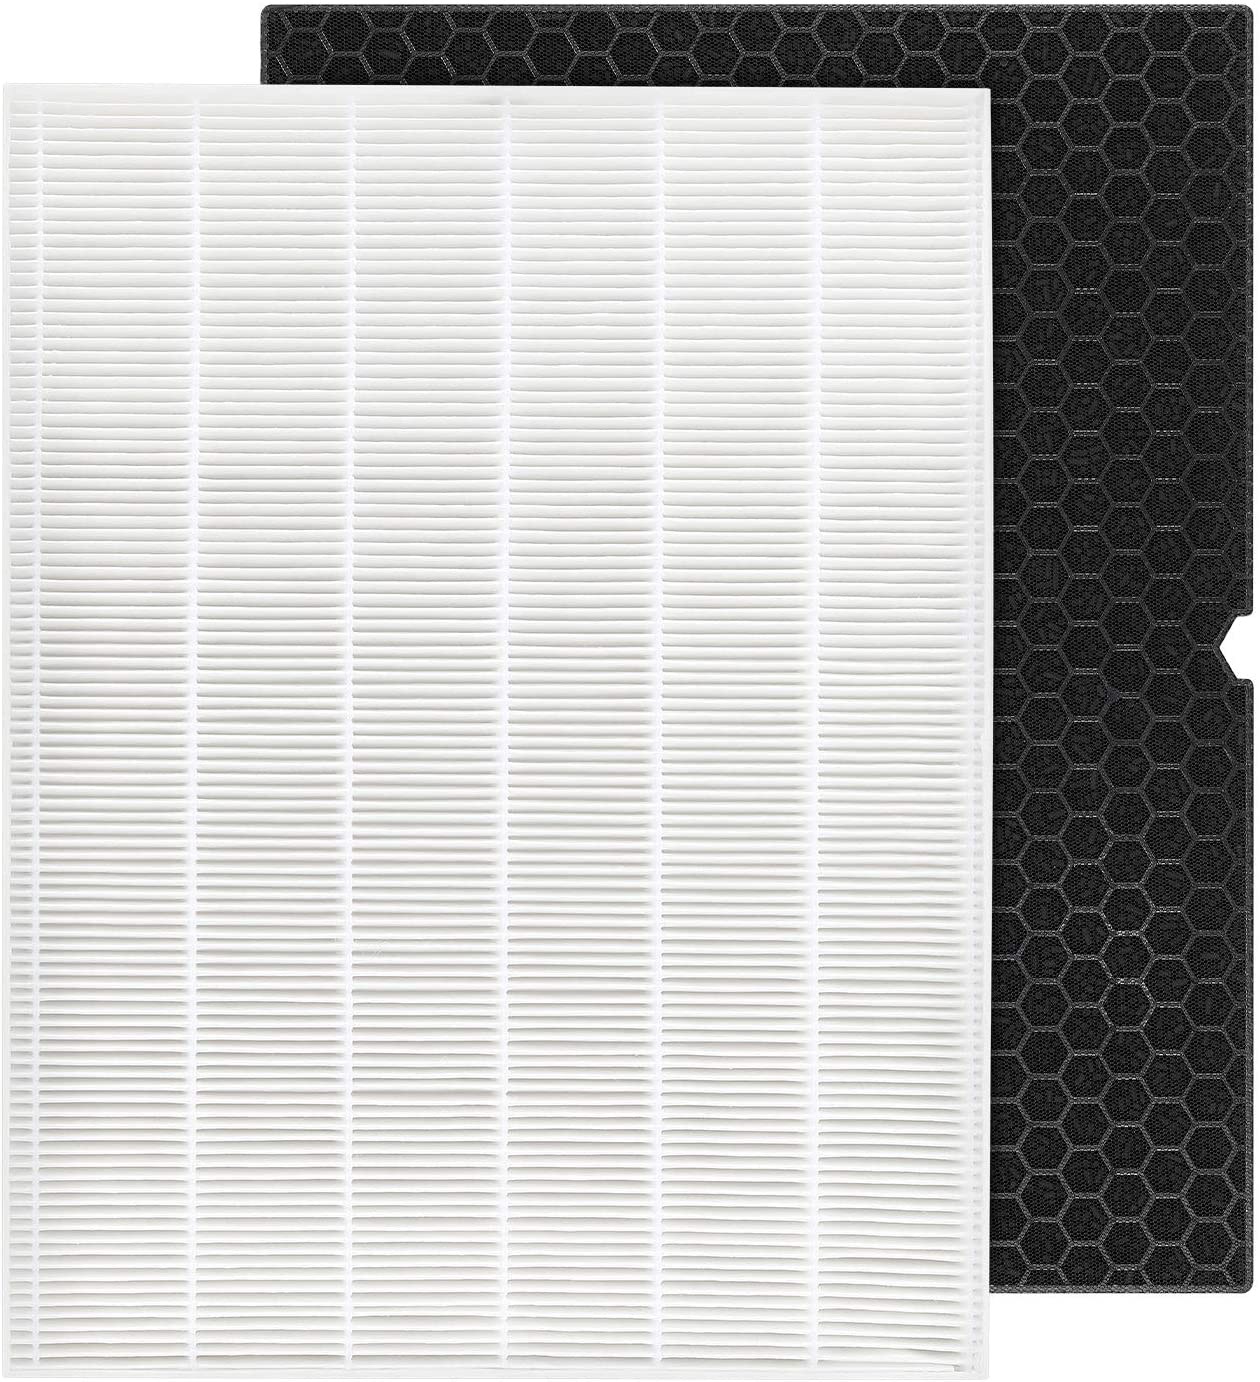 isinlive HEPA Replacement Filter H 116130 for Winix 5500-2 Air Purifier - HEPA Filter and Activated Carbon Filter Combo Pack